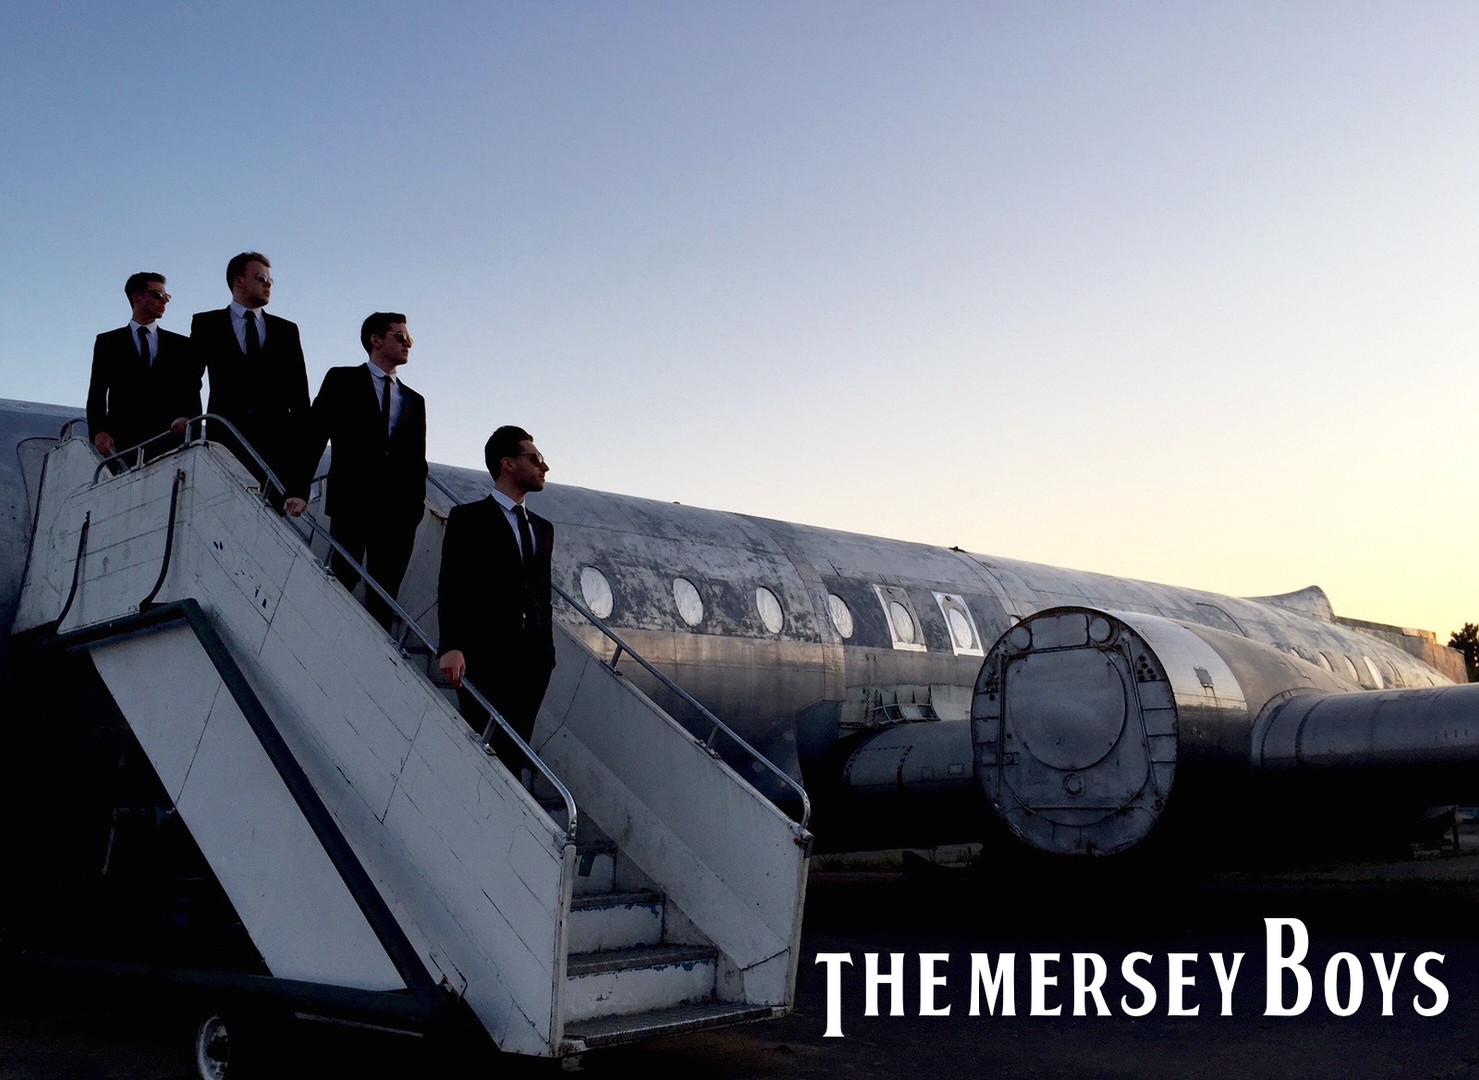 The Mersey Boys